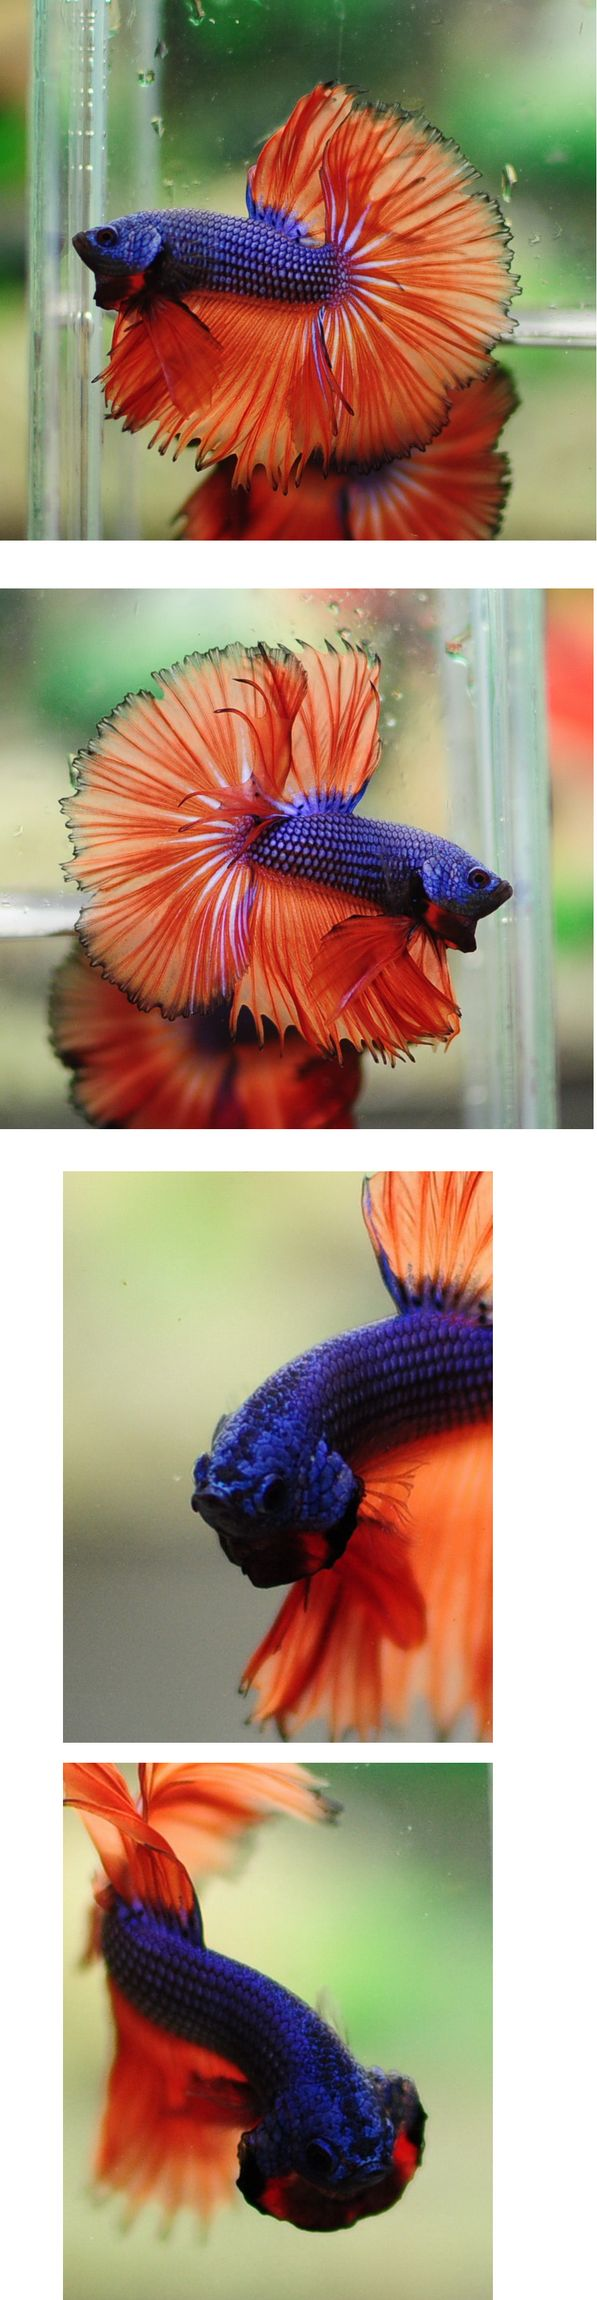 150 best Рыбы images on Pinterest | Water animals, Exotic fish and ...